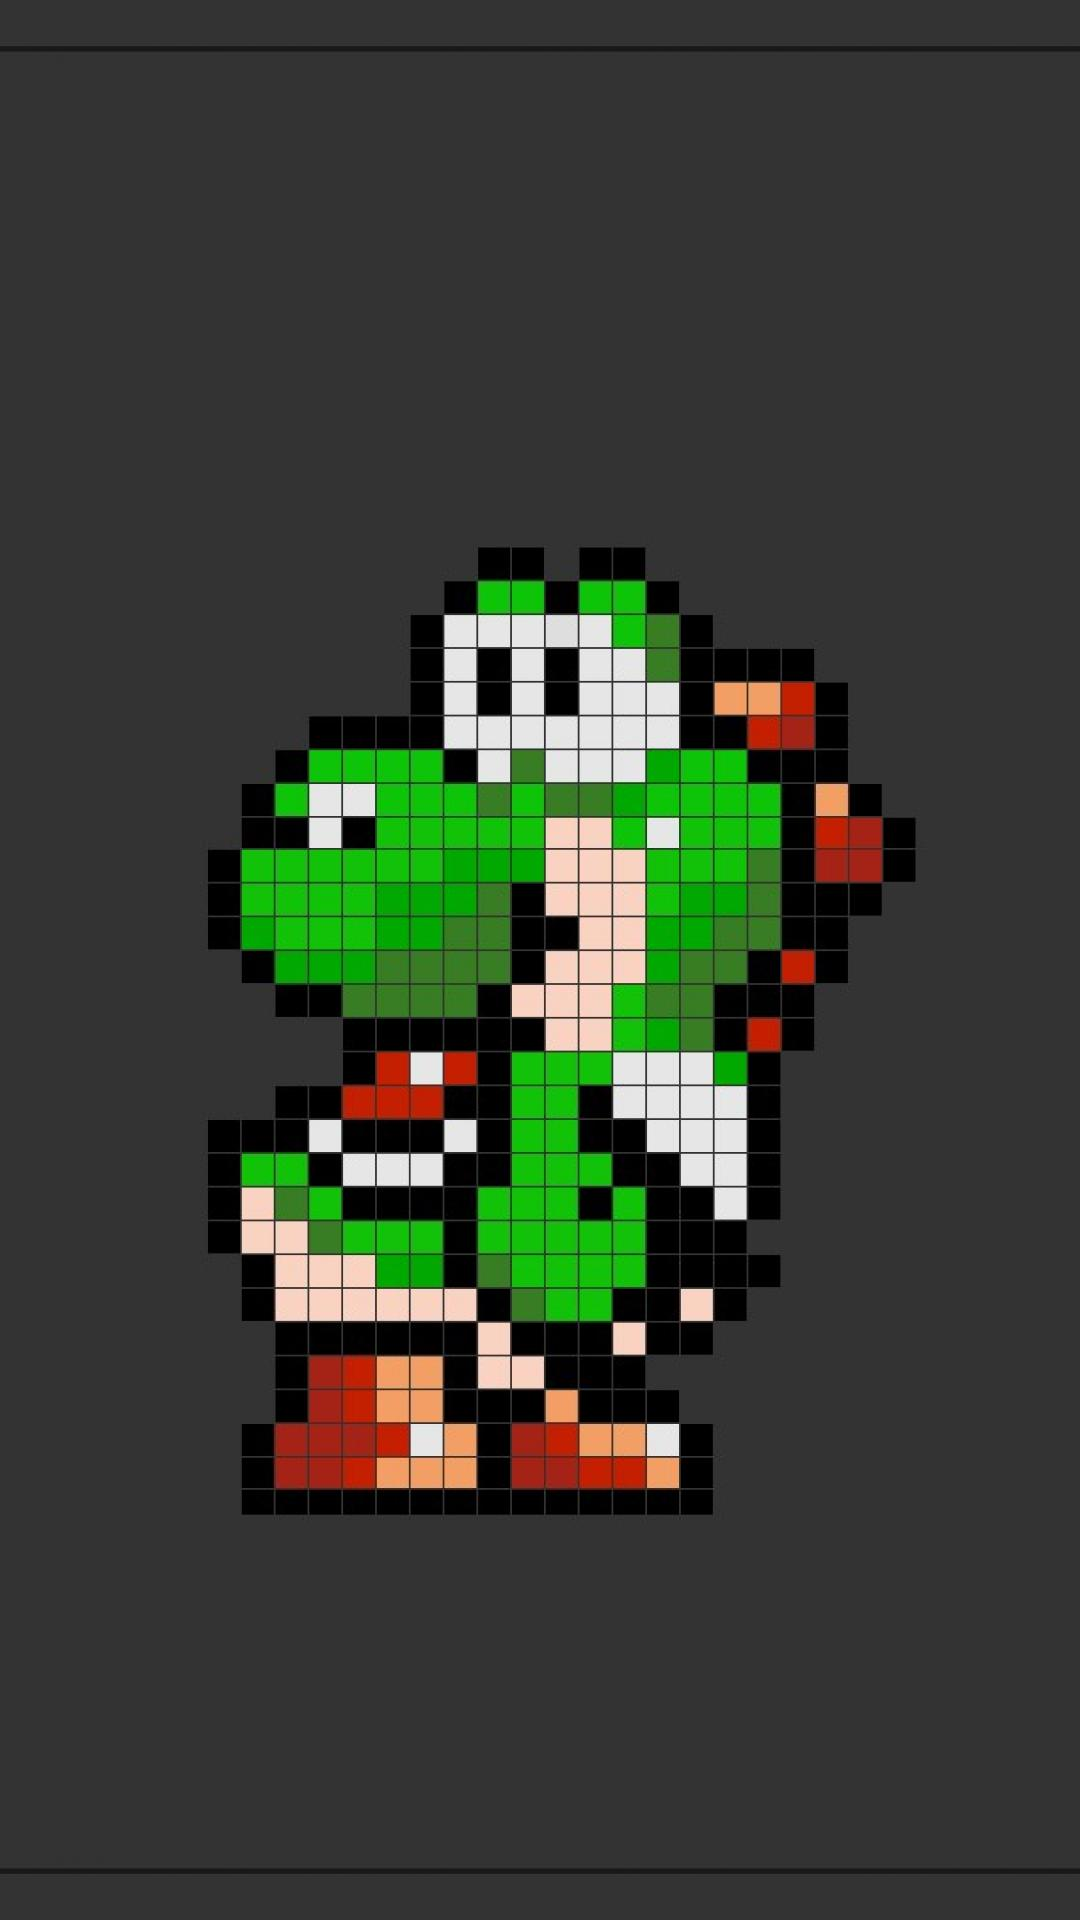 Iphone X Cool Wallpaper Features 8 Bit Video Game Wallpapers For Iphone And Ipad